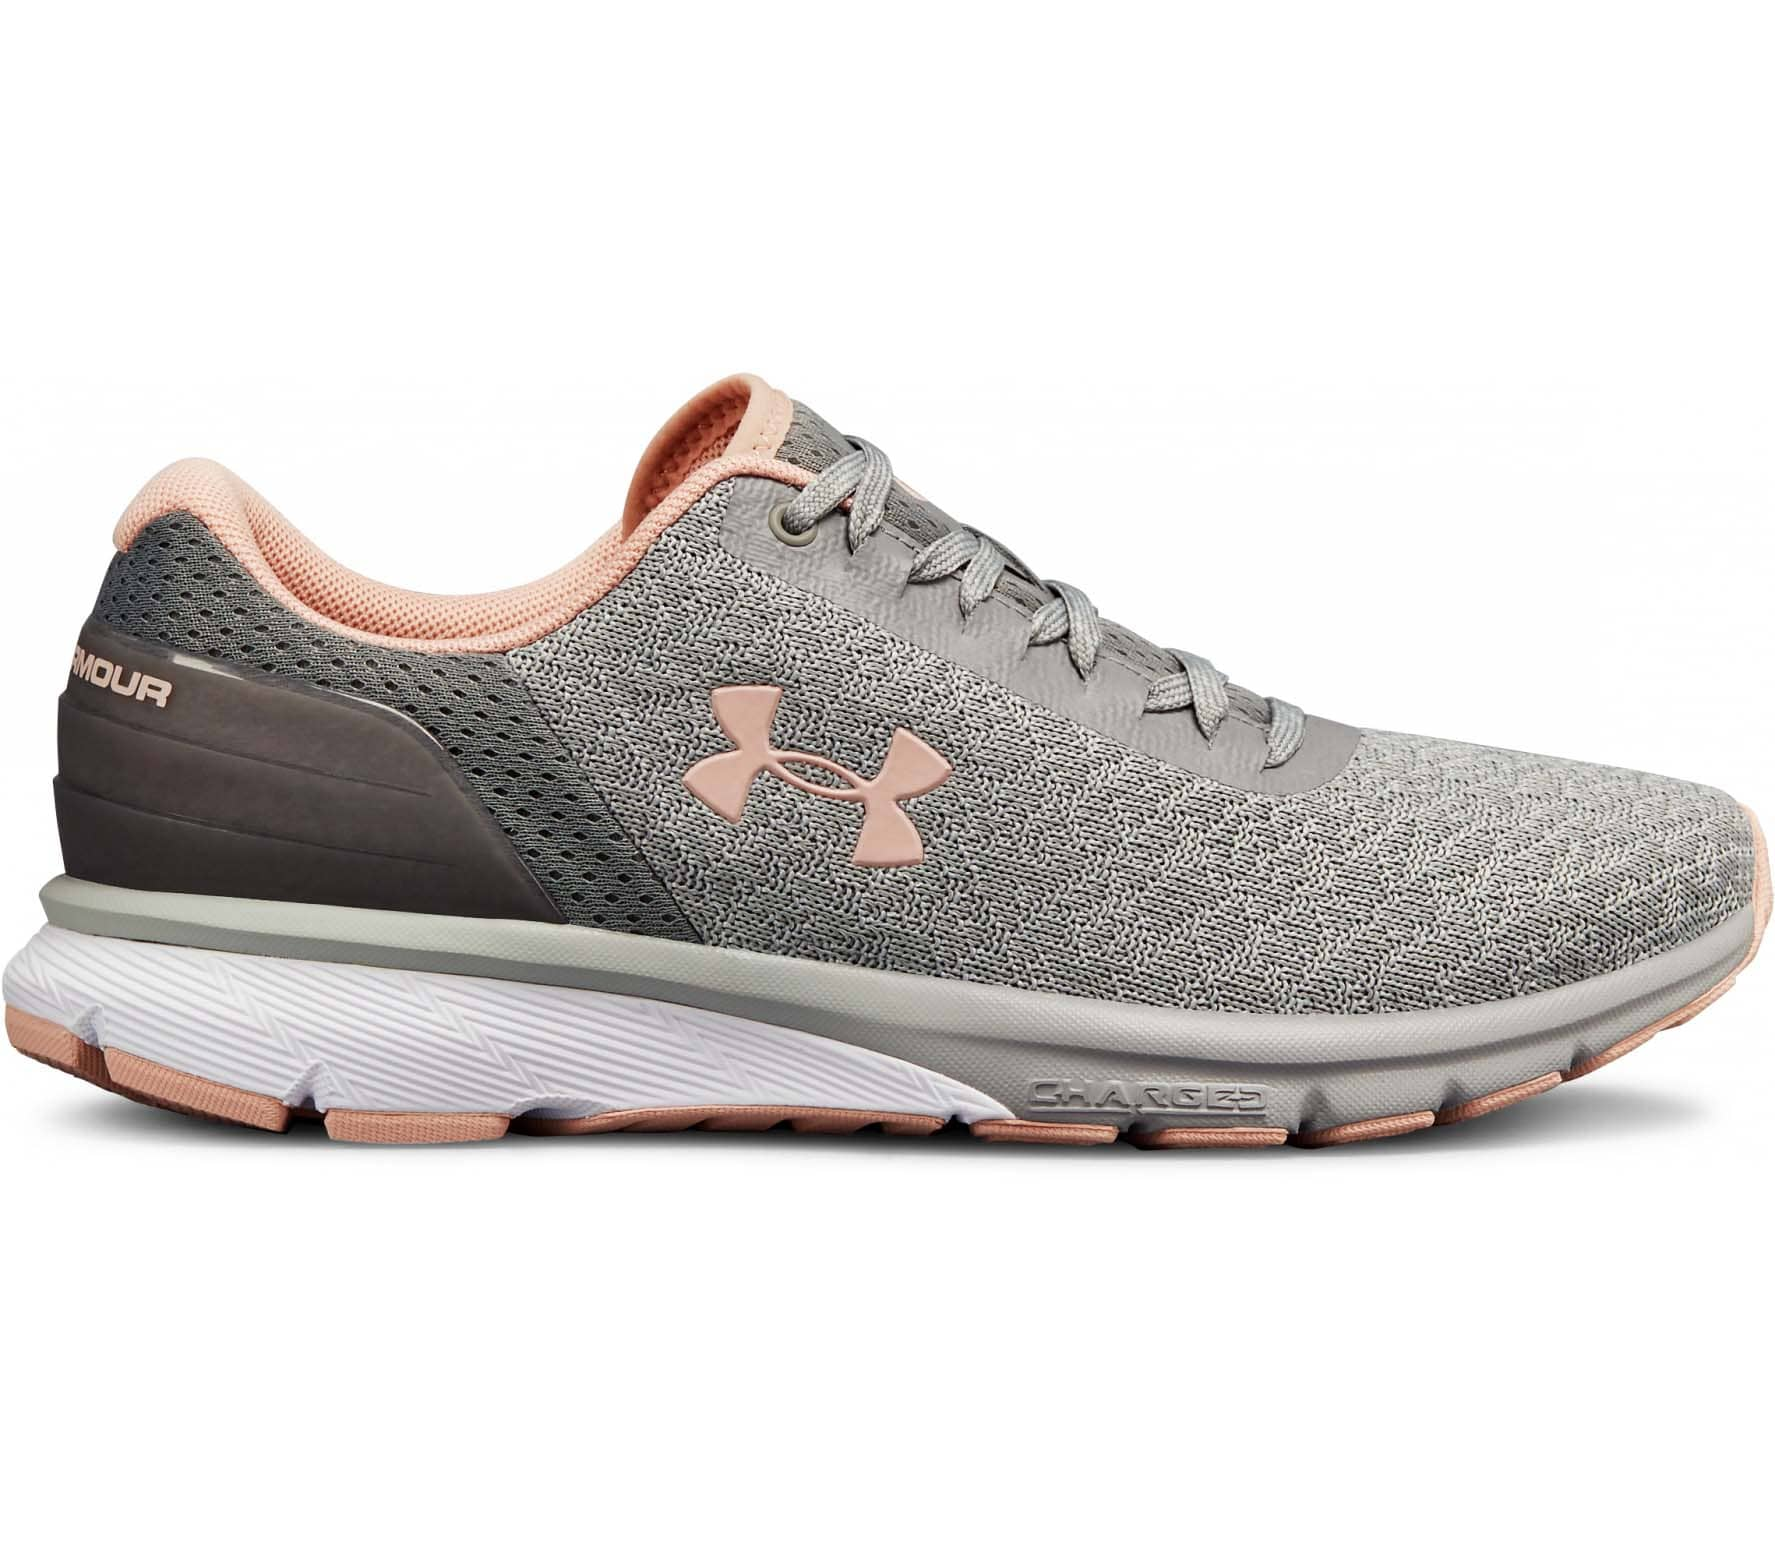 88e702948dfb Under Armour - Charged Escape 2 women s running shoes (grey) Køb ...